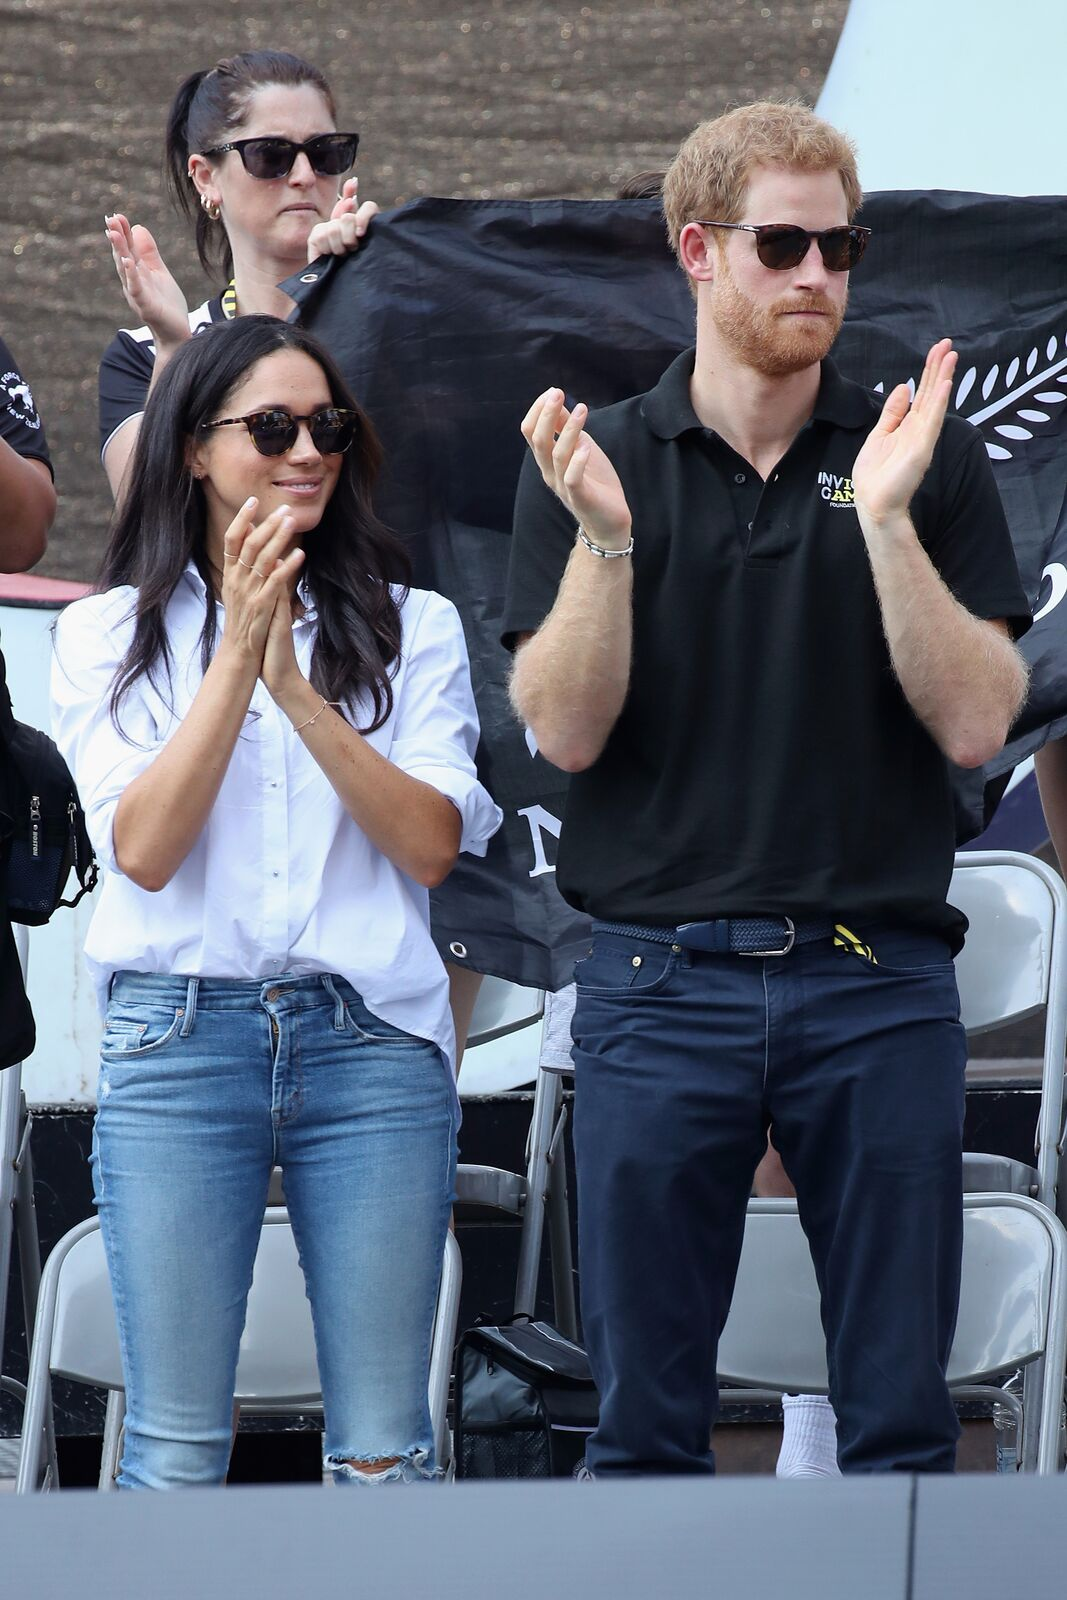 Le prince Harry et Meghan Markle assistent à un match de tennis en fauteuil roulant lors des Jeux Invictus 2017 au Nathan Philips Square le 25 septembre 2017 à Toronto, Canada. | Photo : Getty Images